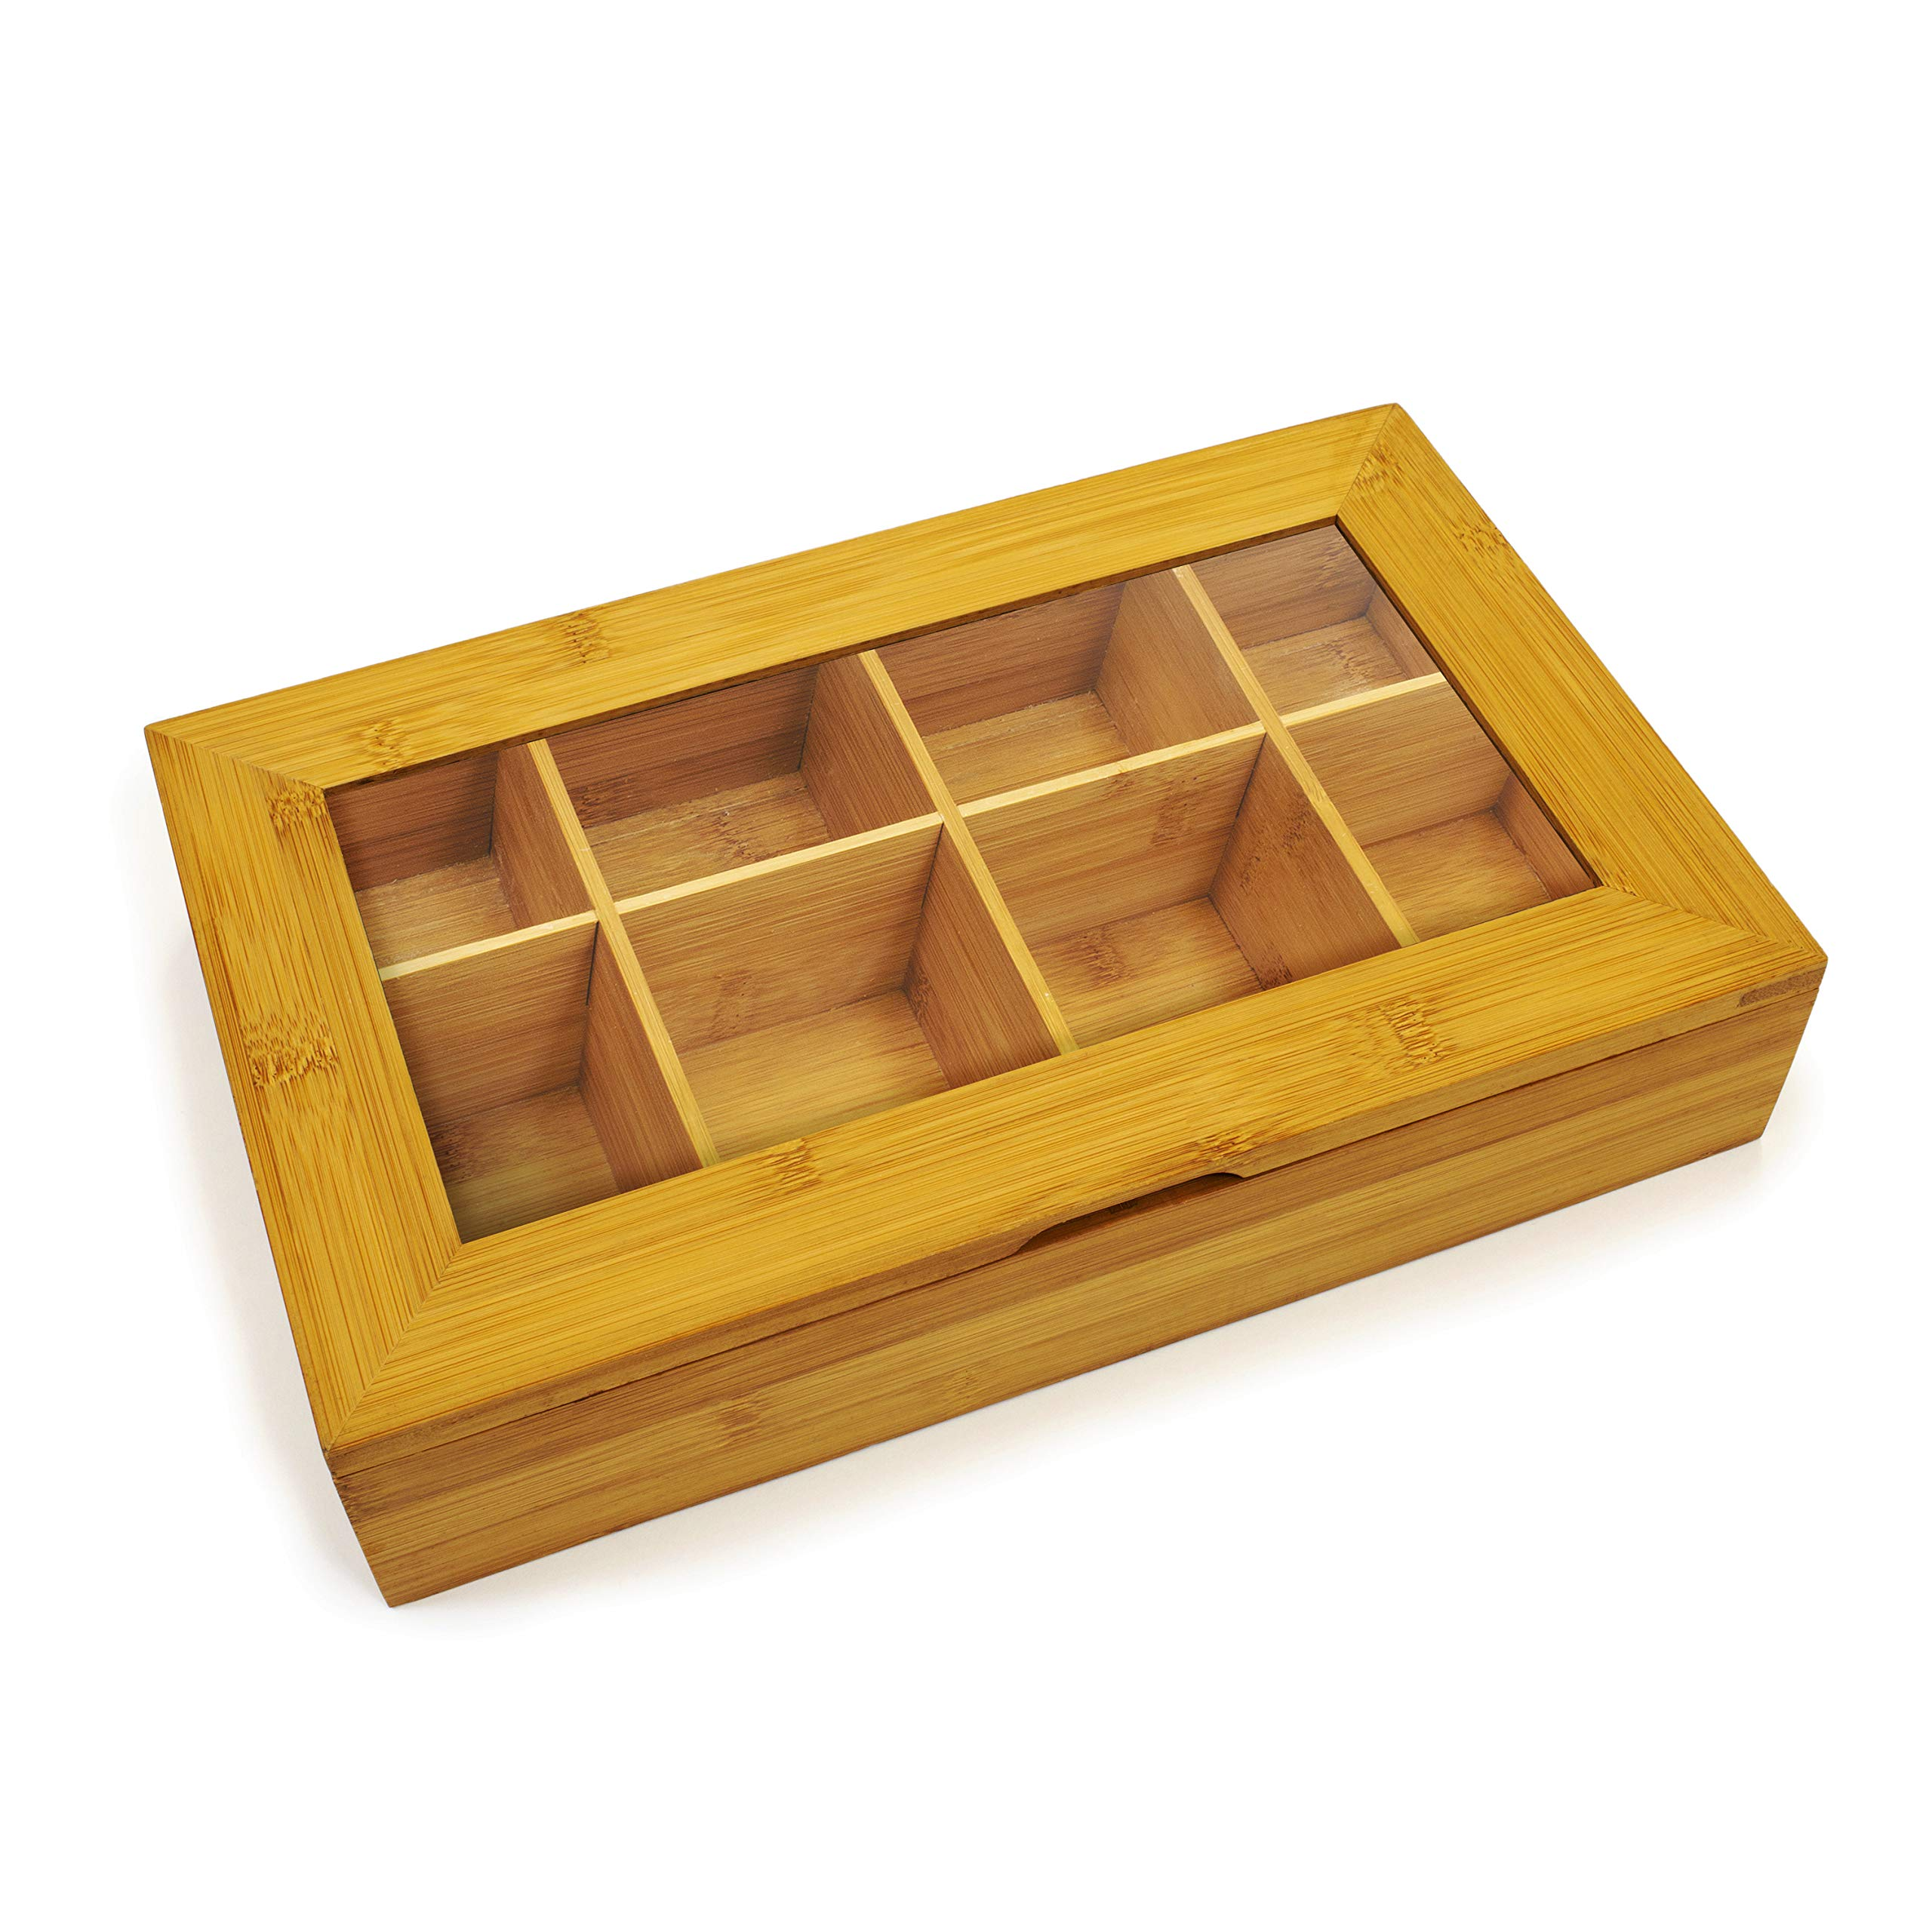 Bamboo Tea Box Storage Organizer With See Through Lid, 8 Adjustable Chest Compartments, Natural Bamboo Wooden Finish Tea Bag Organizer by Cooler Kitchen